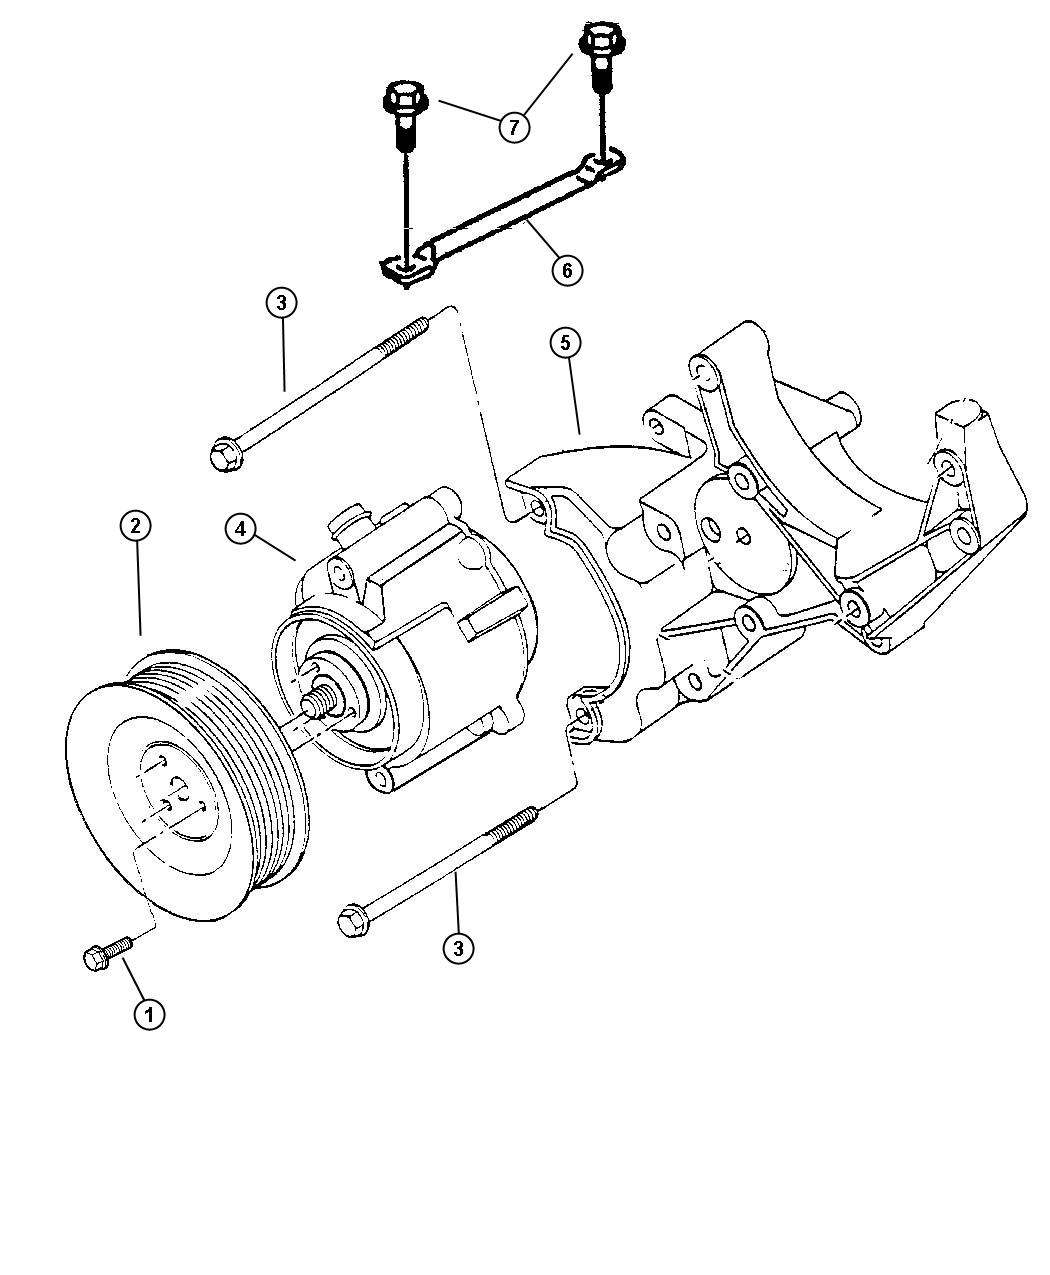 Chrysler Lhs Bracket Used For Air Pump And Tensioner